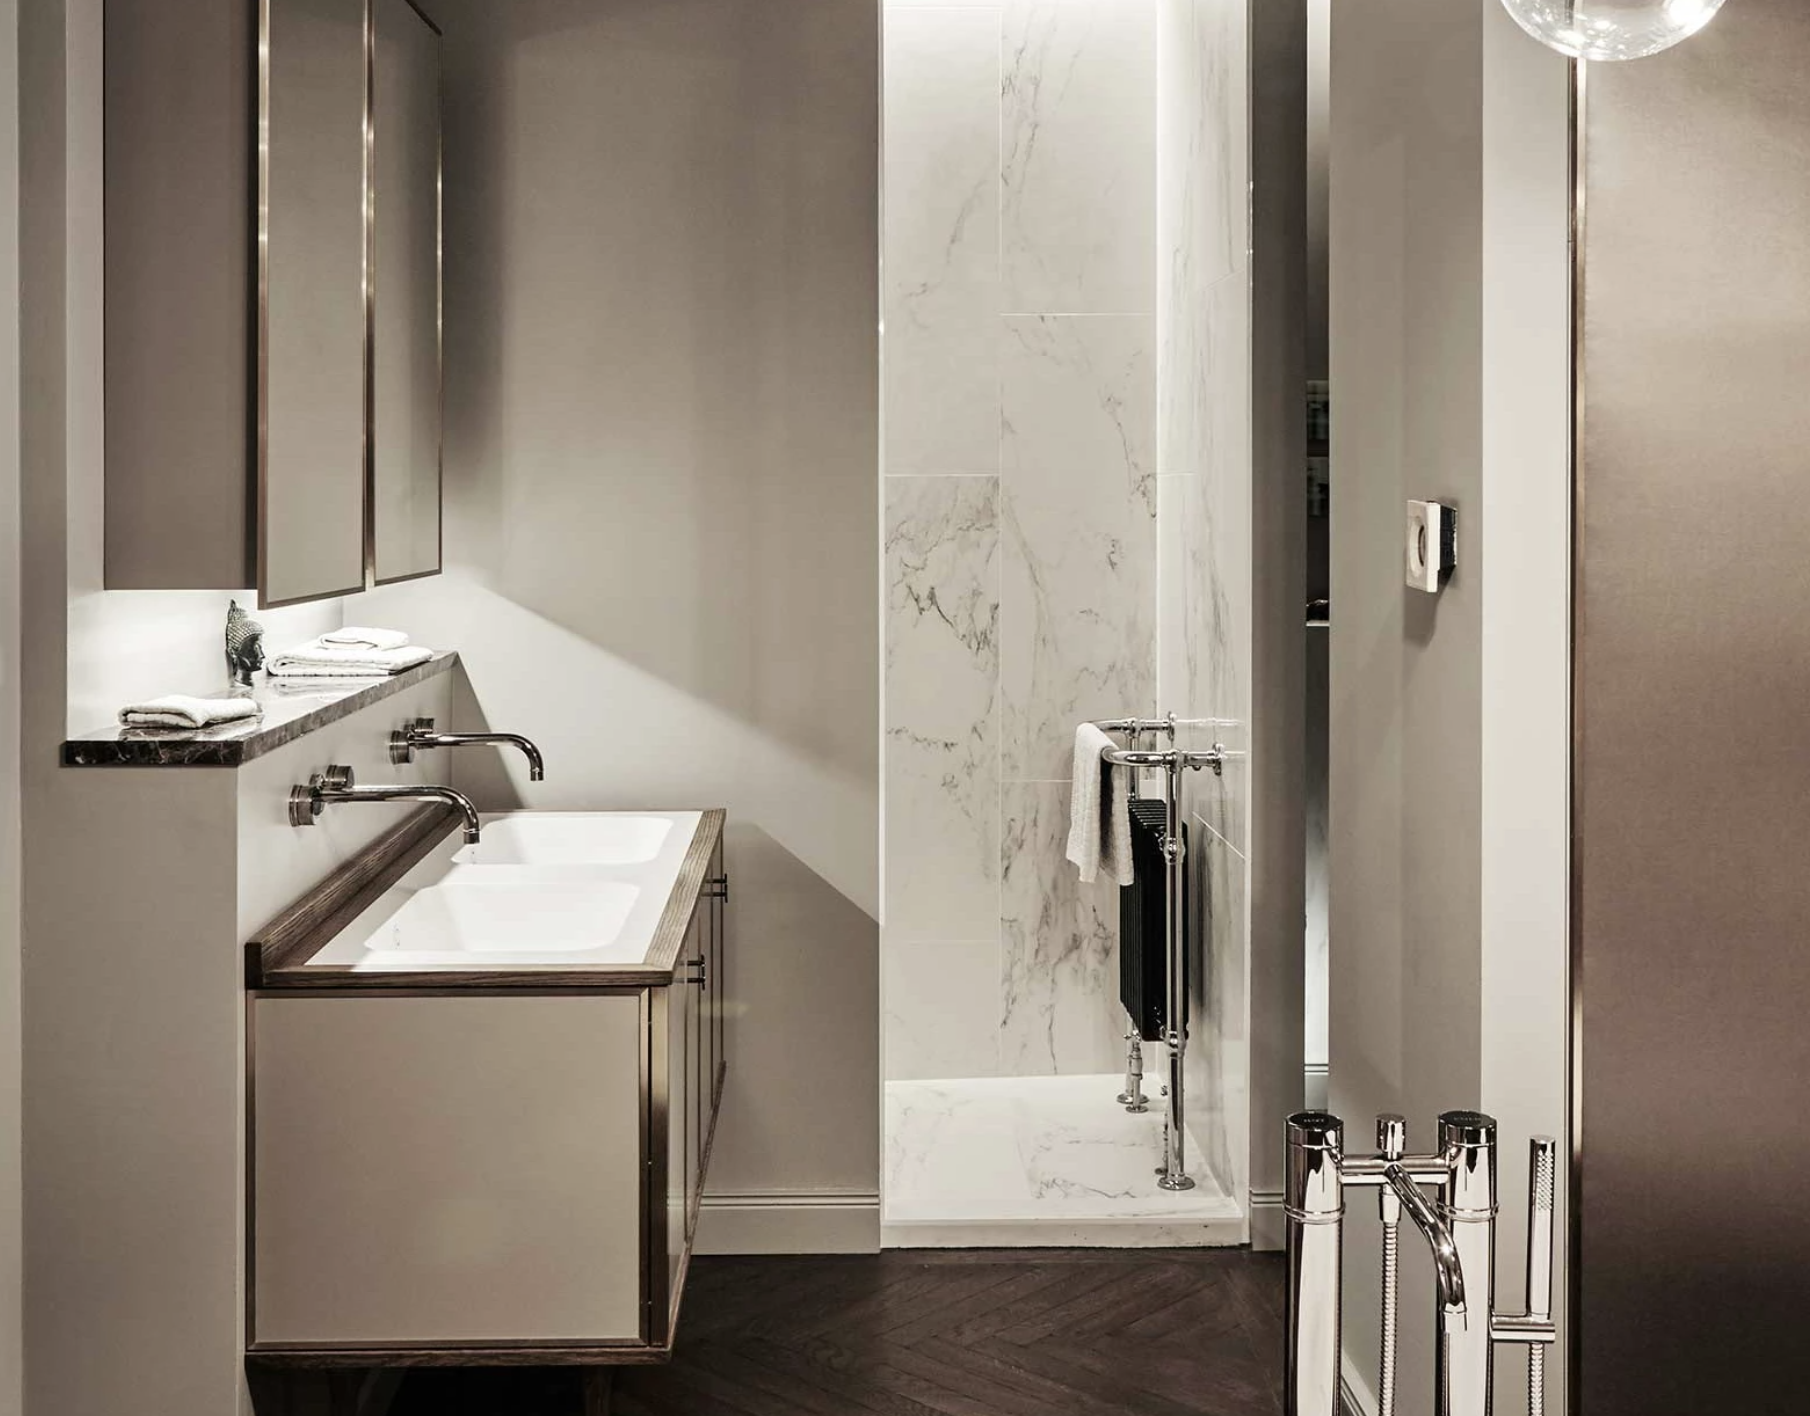 novono NOVONO, Mystic And Contemporary Bathrooms From Berlin Captura de ecra   2020 11 18 a  s 16